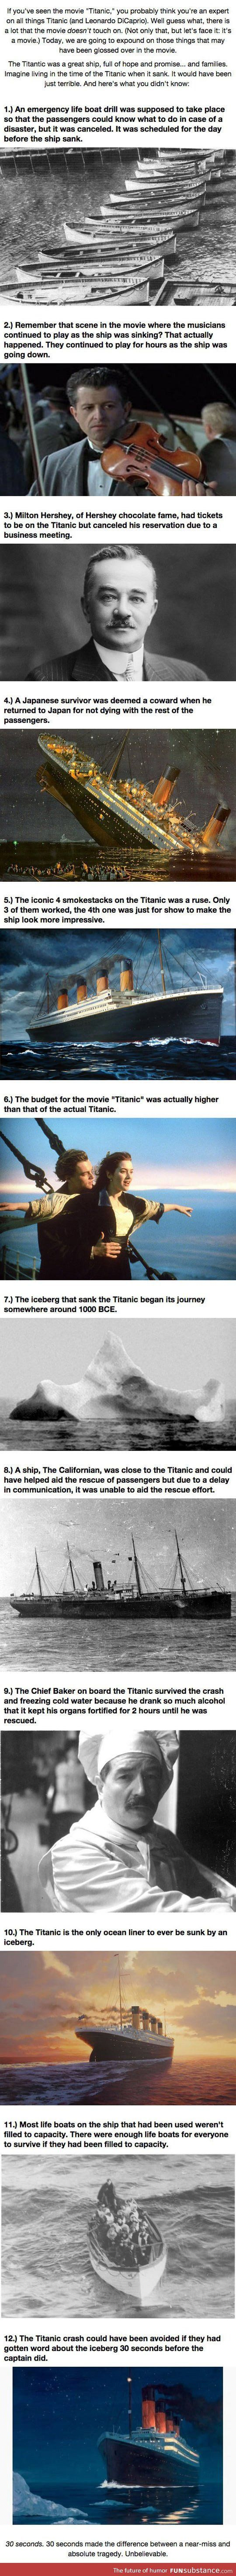 Some Of Titanic's Secrets And Facts – FunSubstance